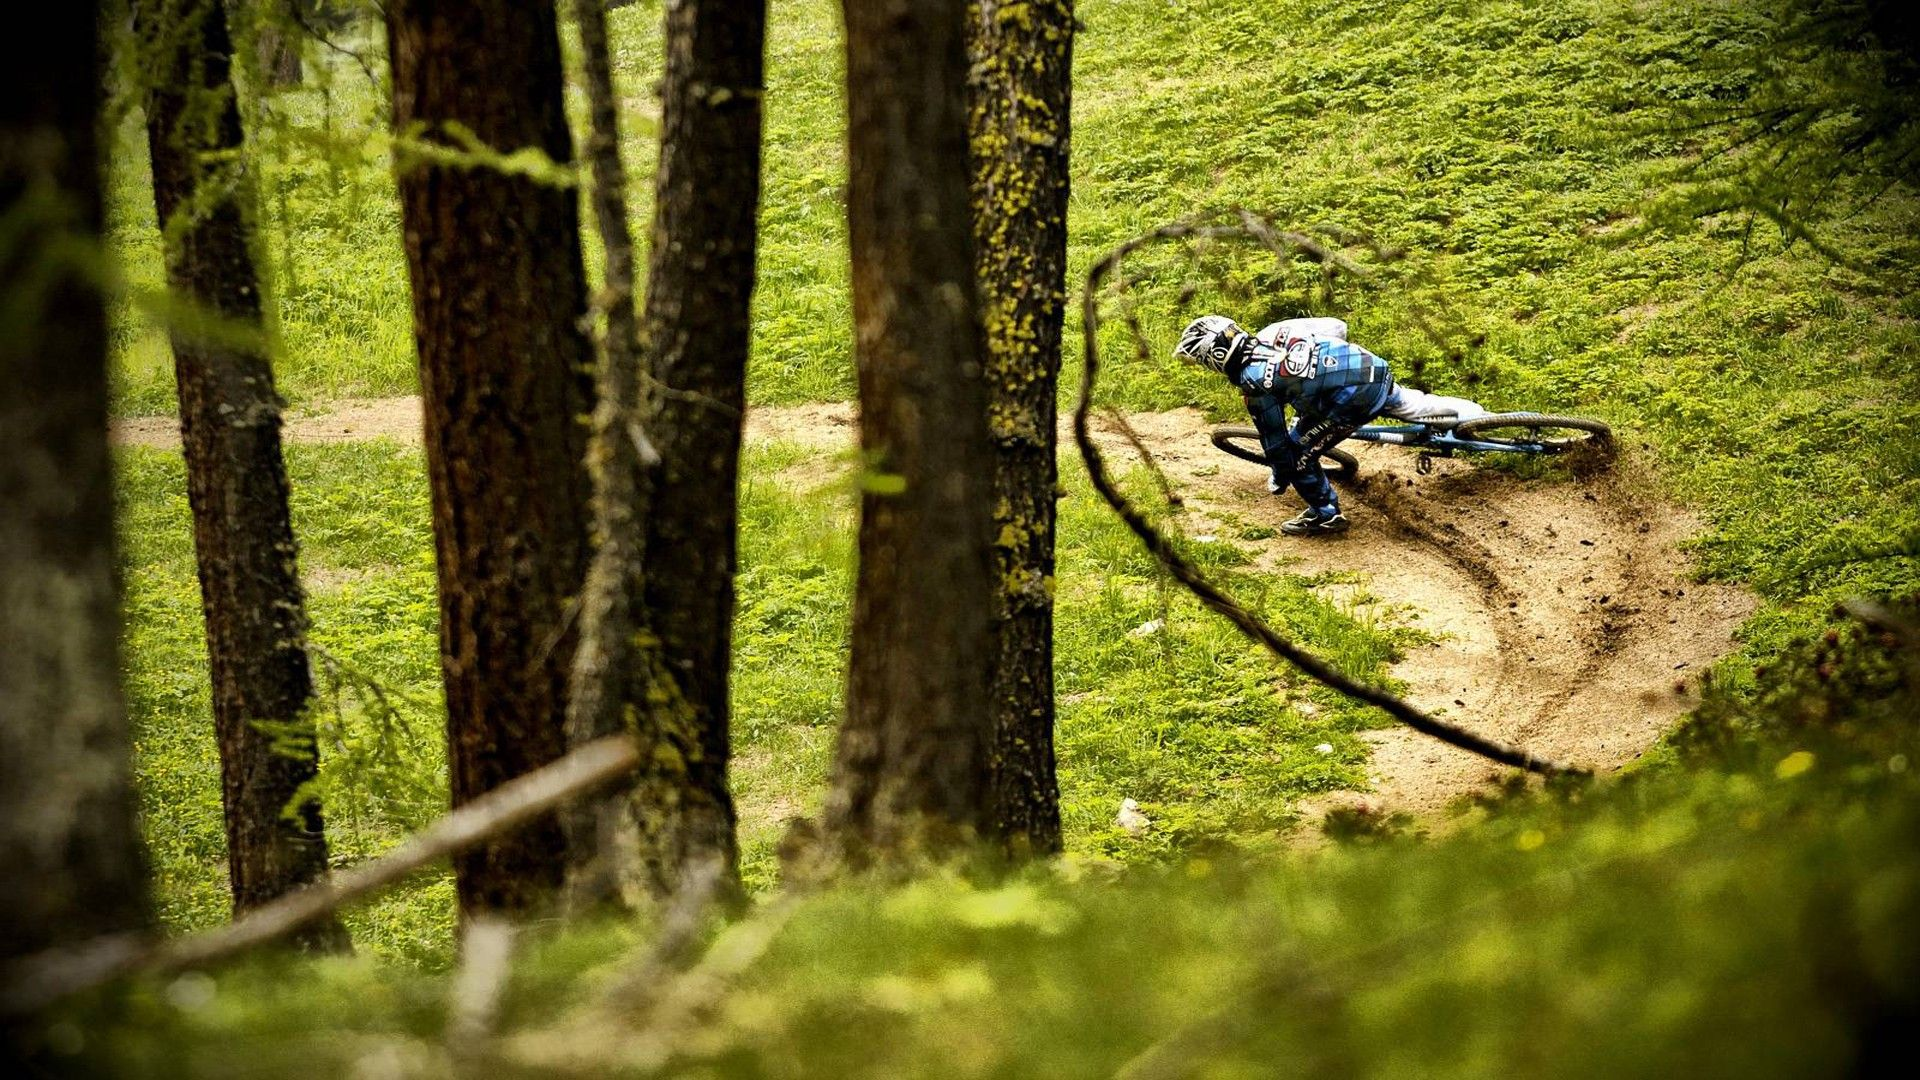 Download This Awesome Wallpaper Wallpaper Cave Downhill